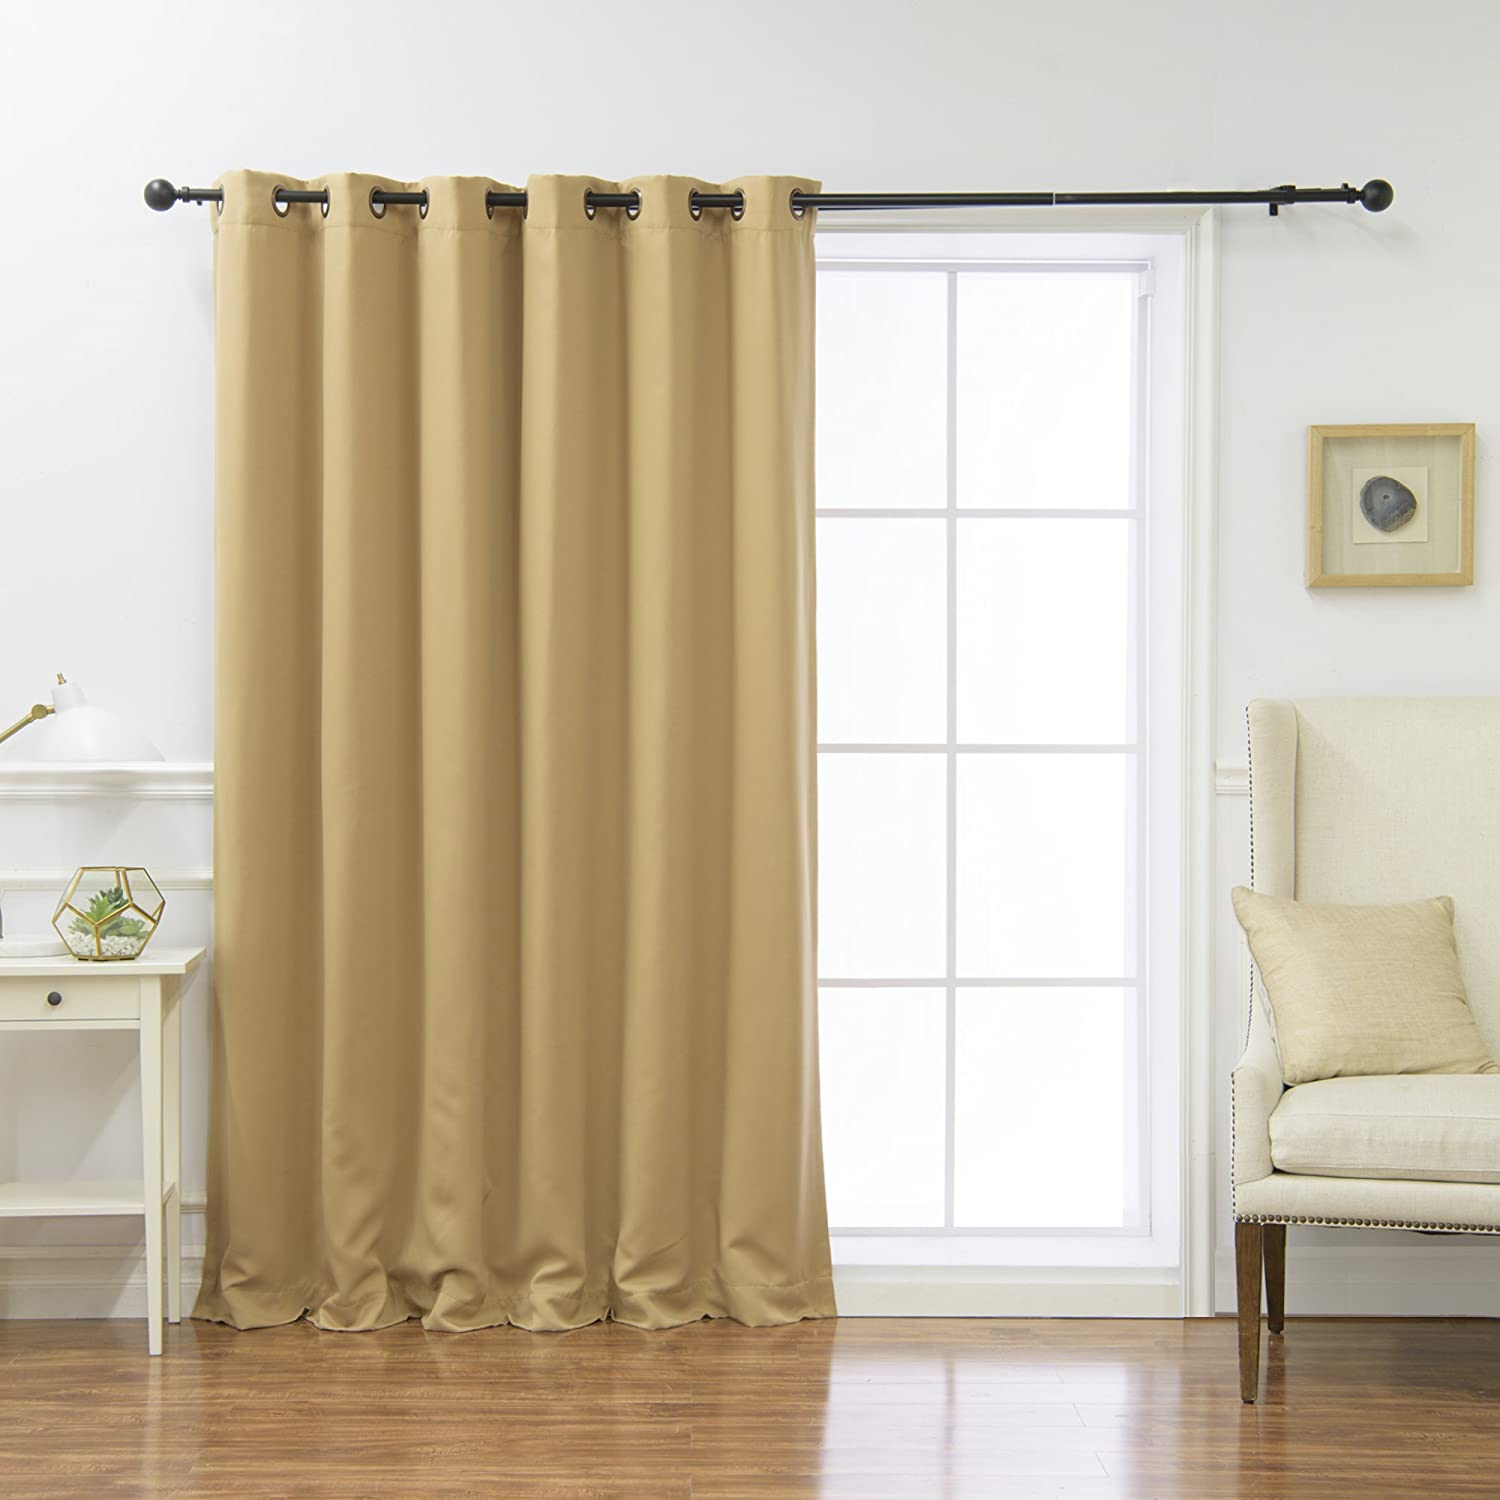 "Best Home Fashion Wide Width Thermal Insulated Blackout Curtain - Antique Bronze Grommet Top - Wheat - 80"" W x 84"" L - (1 Panel)"